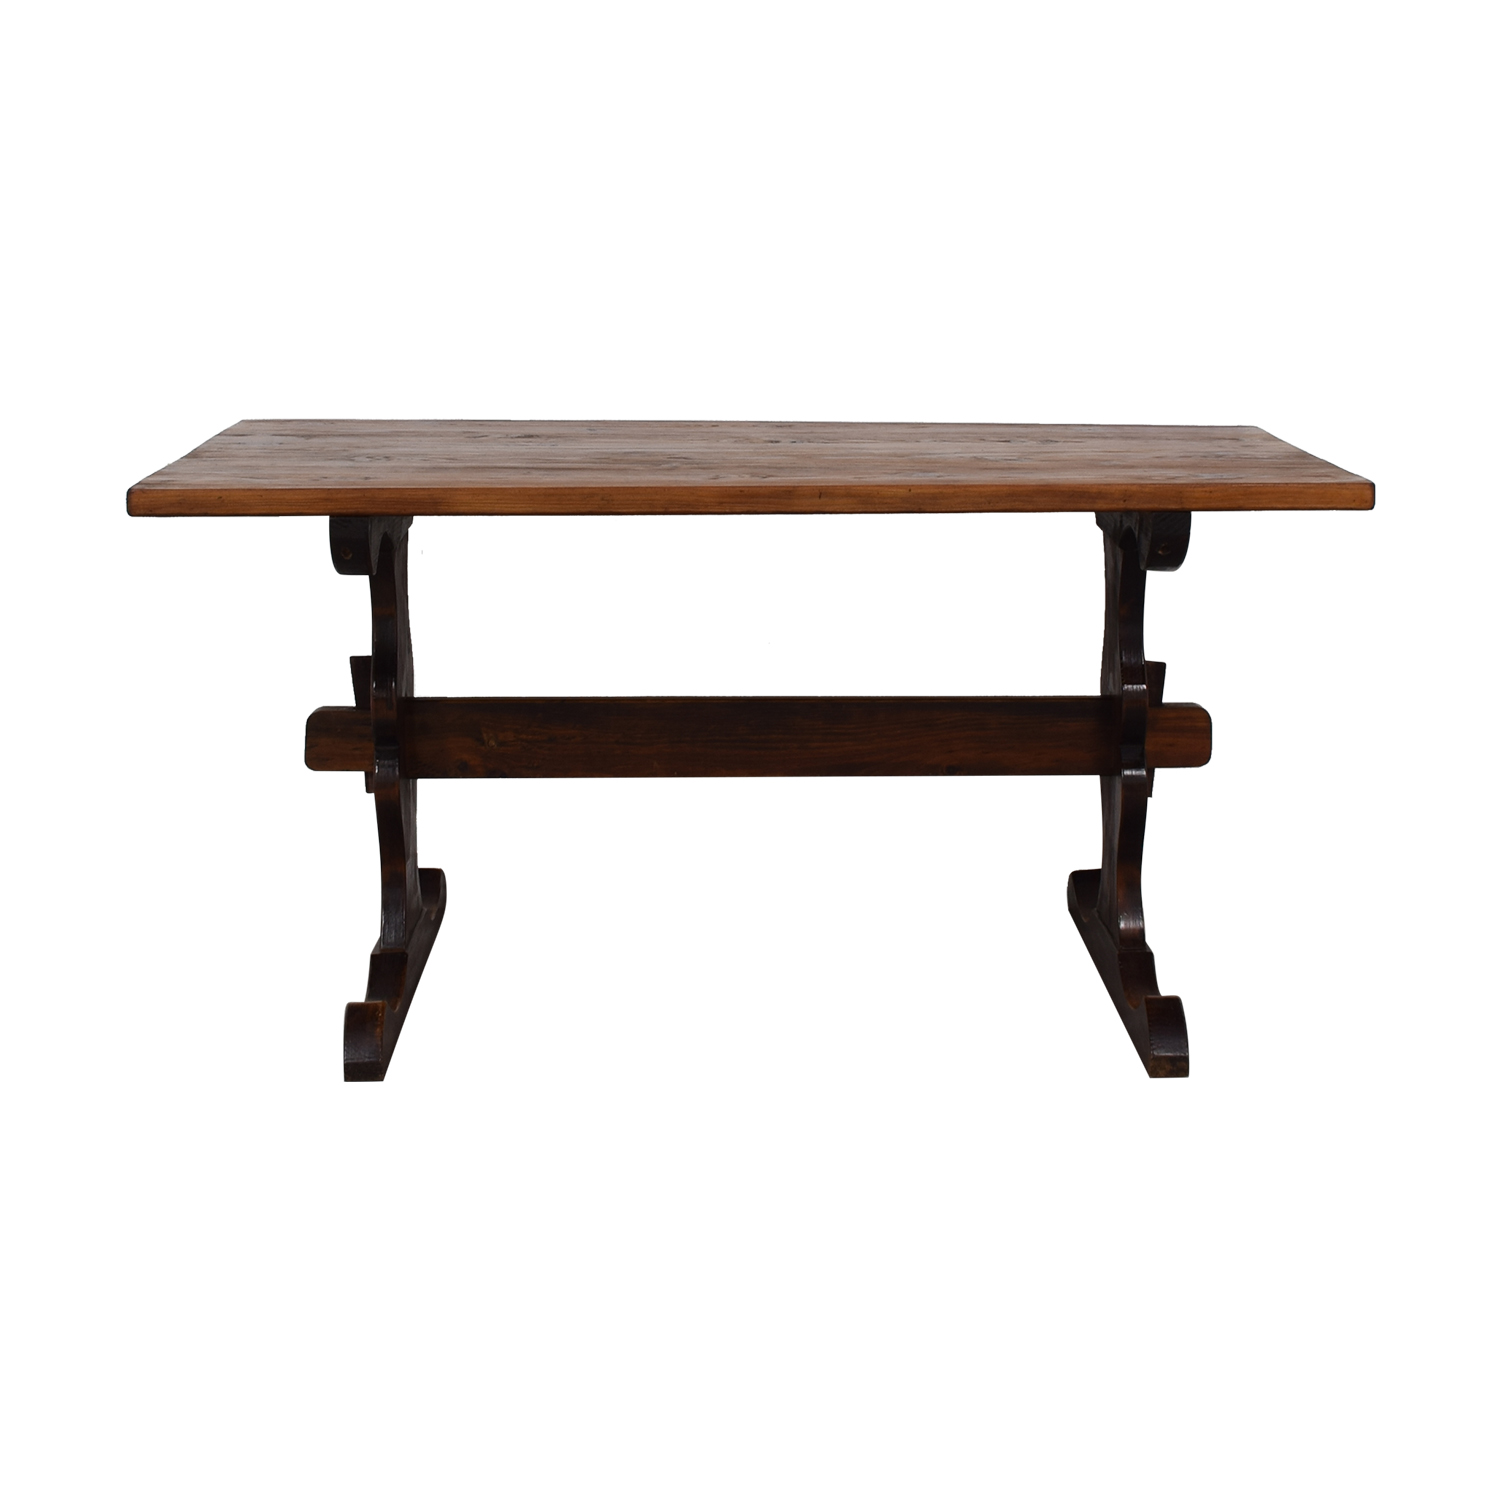 South African Pine Dining Room Table second hand